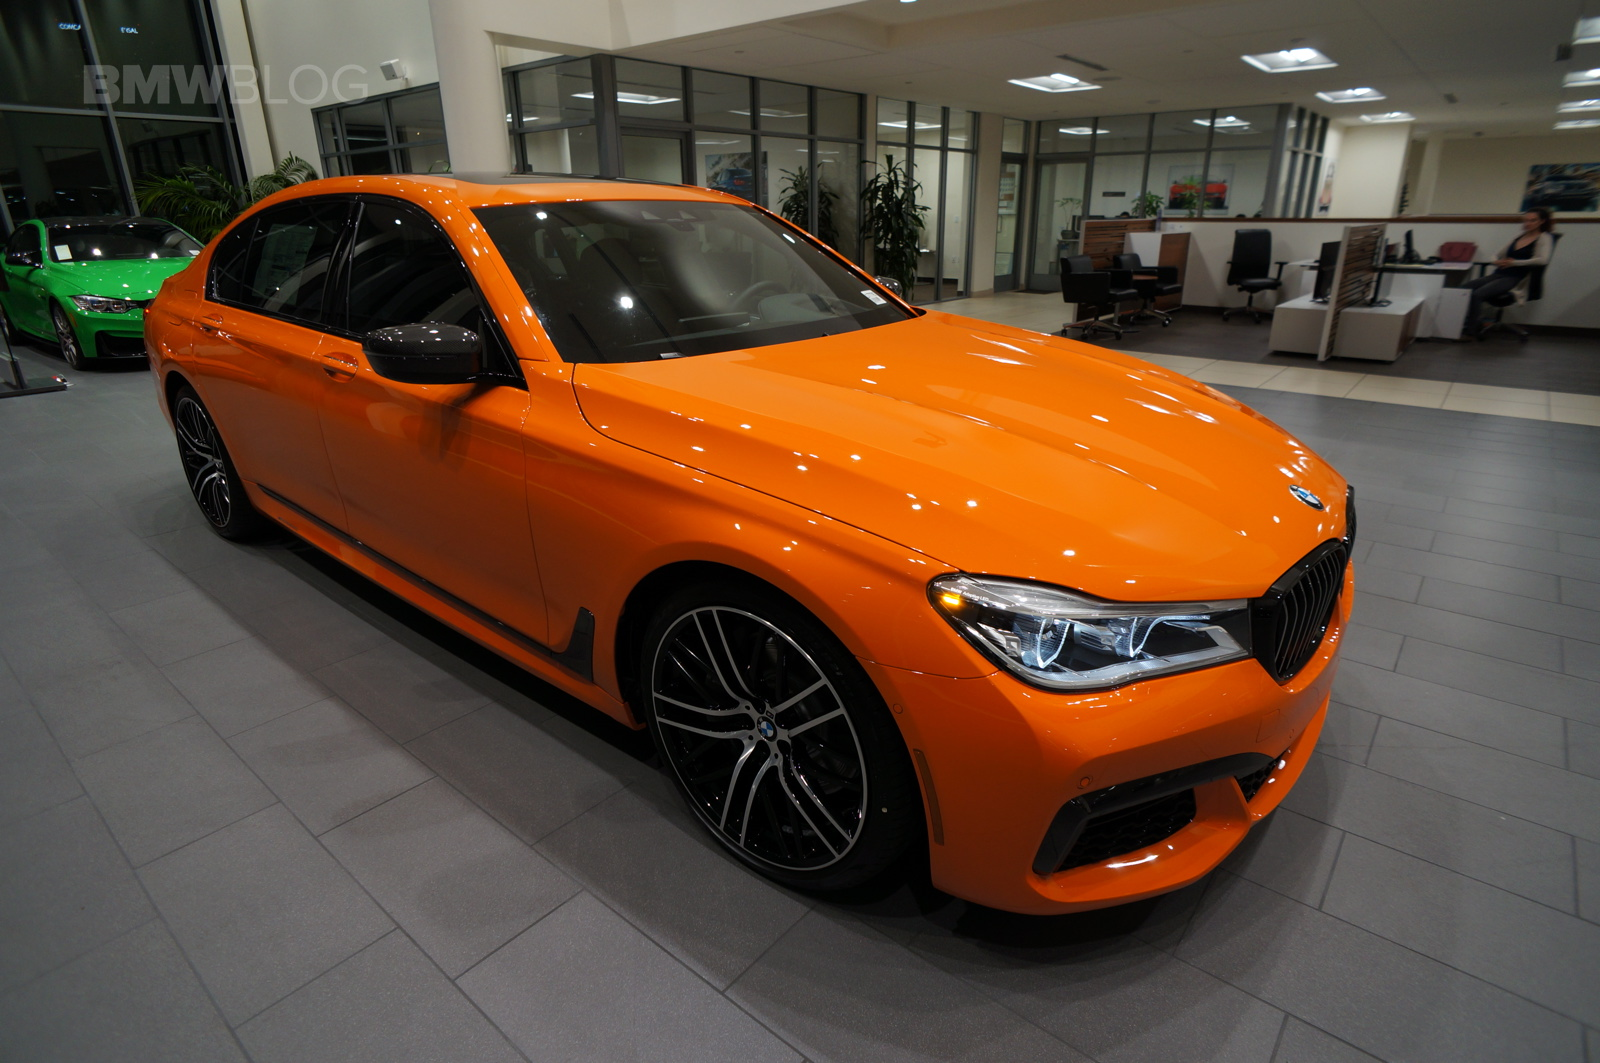 2017 bmw 750i in the unique and flashy fire orange color